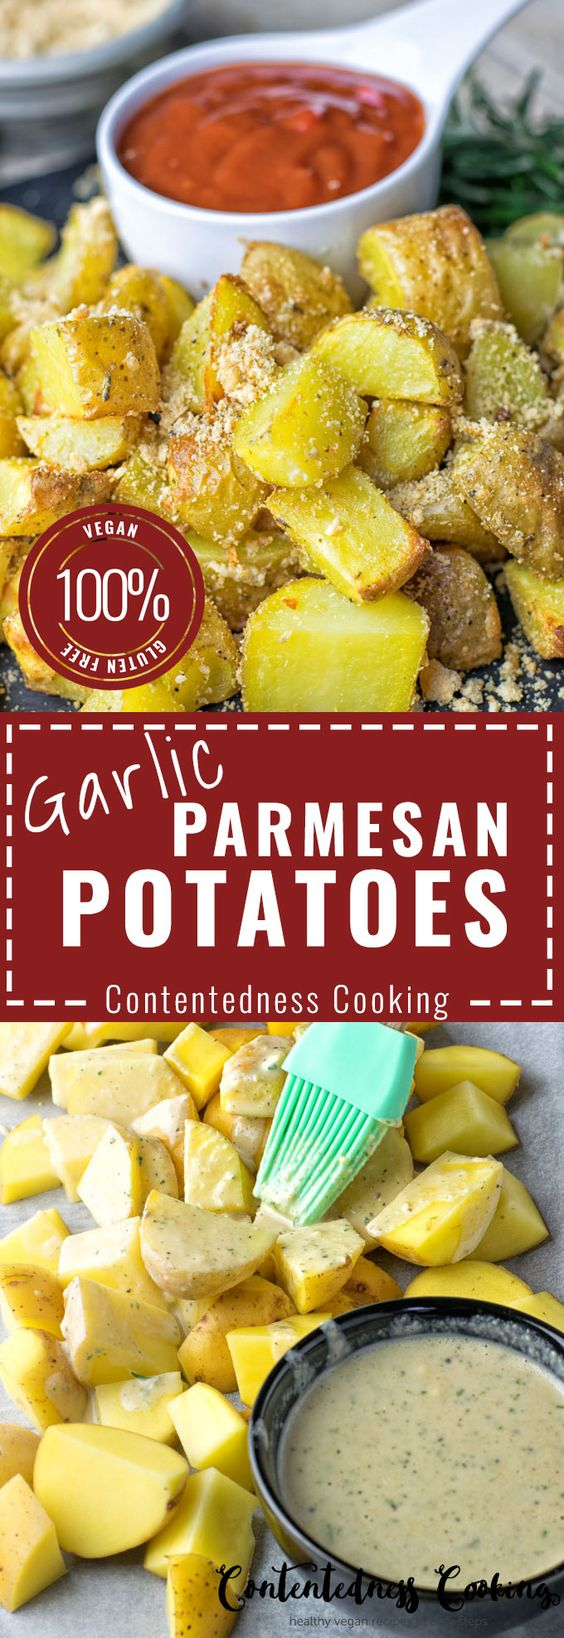 These are seriously the most delicious Garlic Parmesan Potatoes you've ever made for everyone loving delicious comfort food. Just 6 ingredients, 3 easy steps, vegan, gluten free. Can you guess the secret ingredient?: